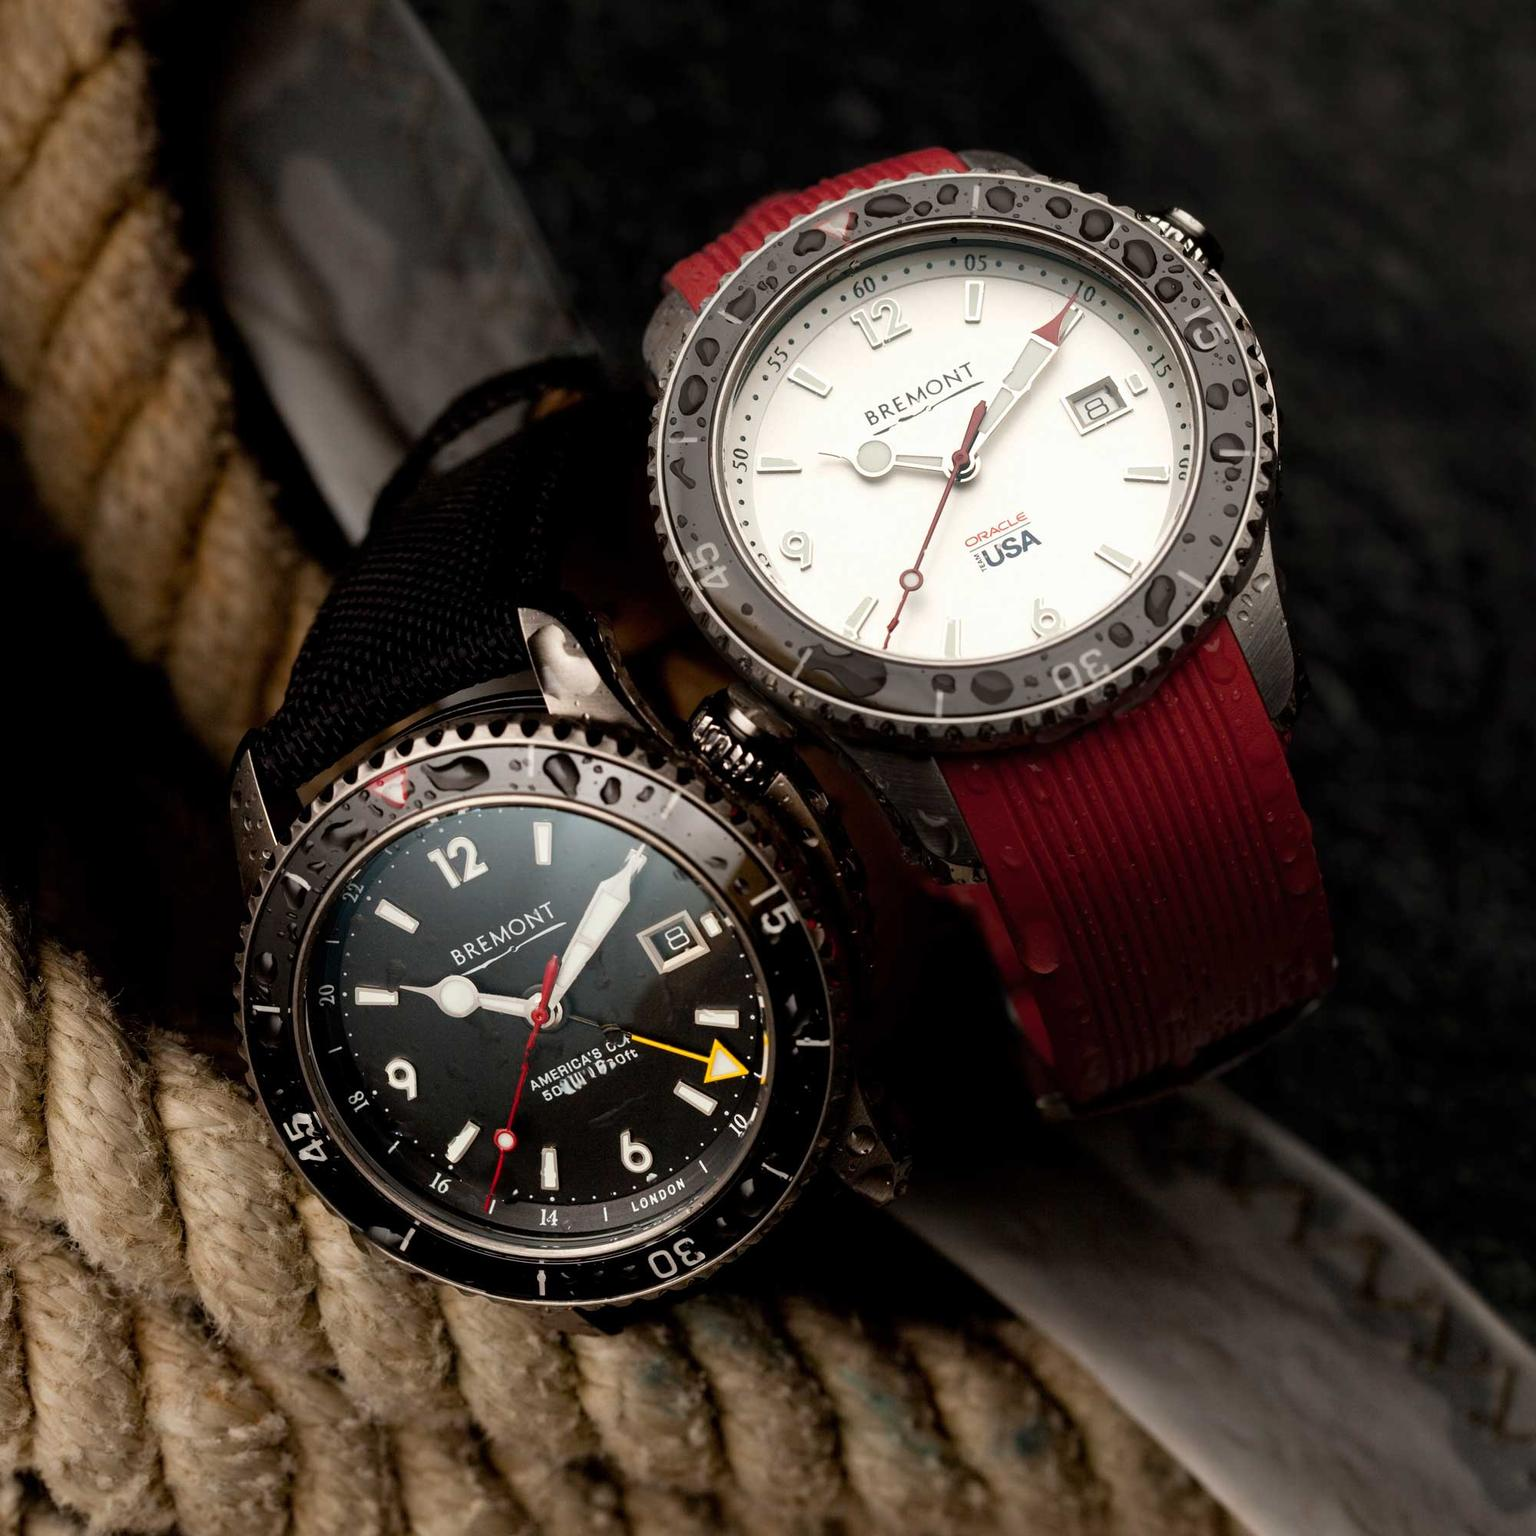 Bremont Oracle I and Oracle II watches